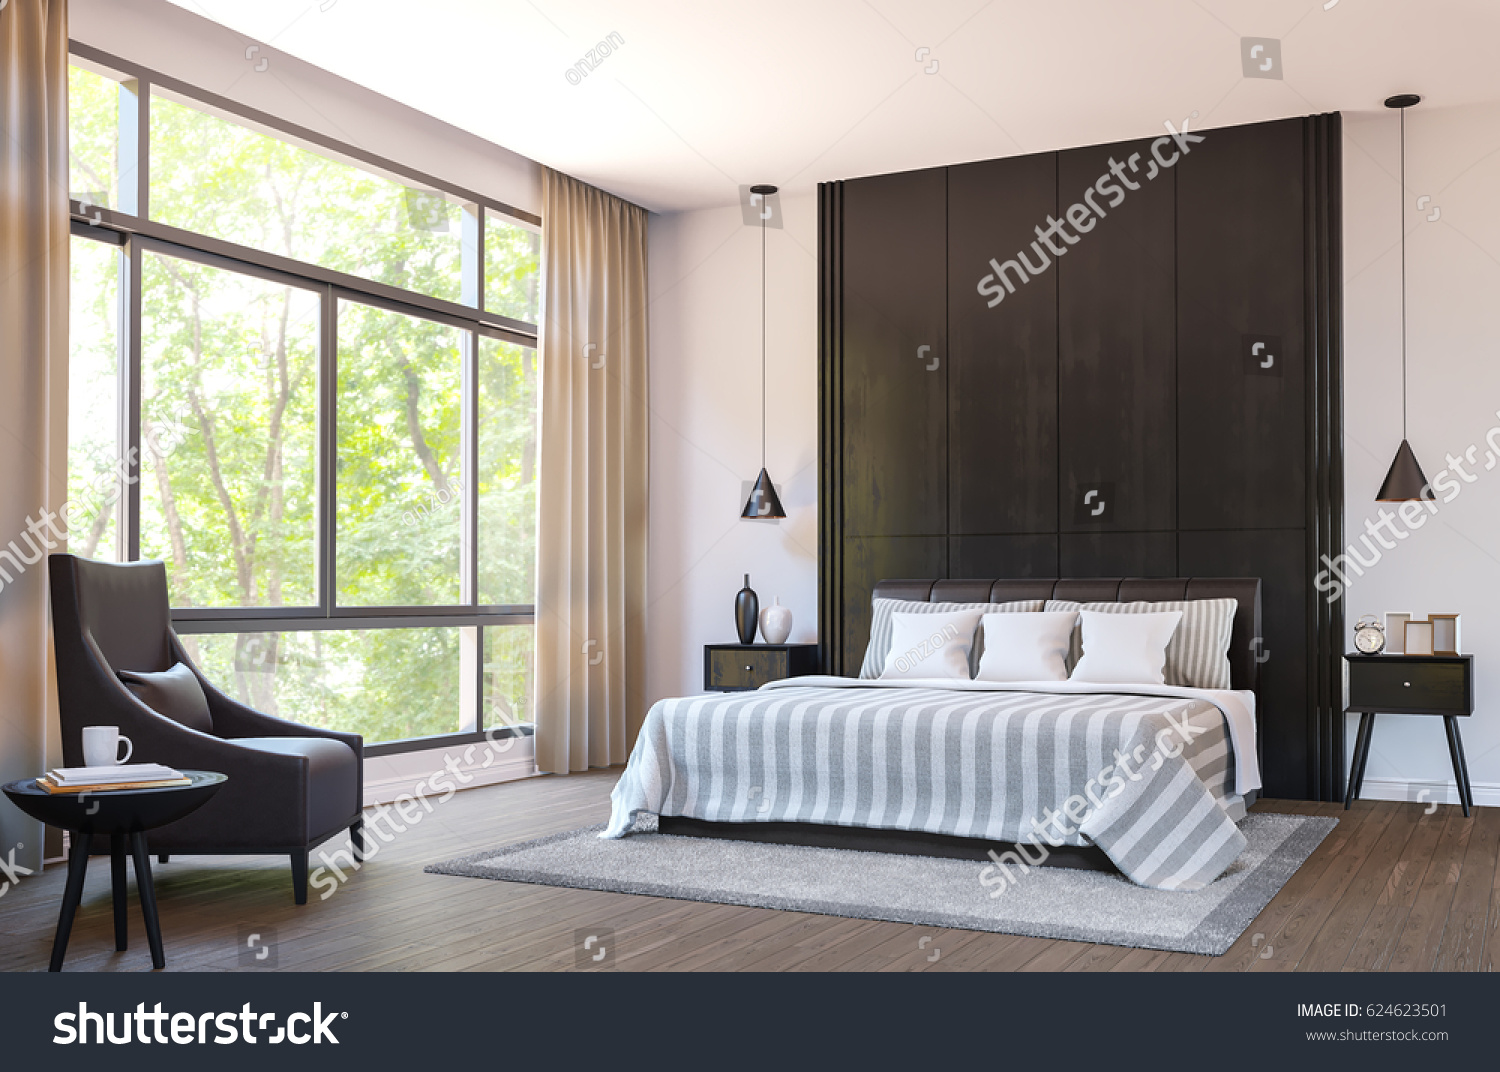 Modern bedroom decorate with brown leather furniture and black wood 3d  rendering image There are. Modern Bedroom Decorate Brown Leather Furniture Stock Illustration